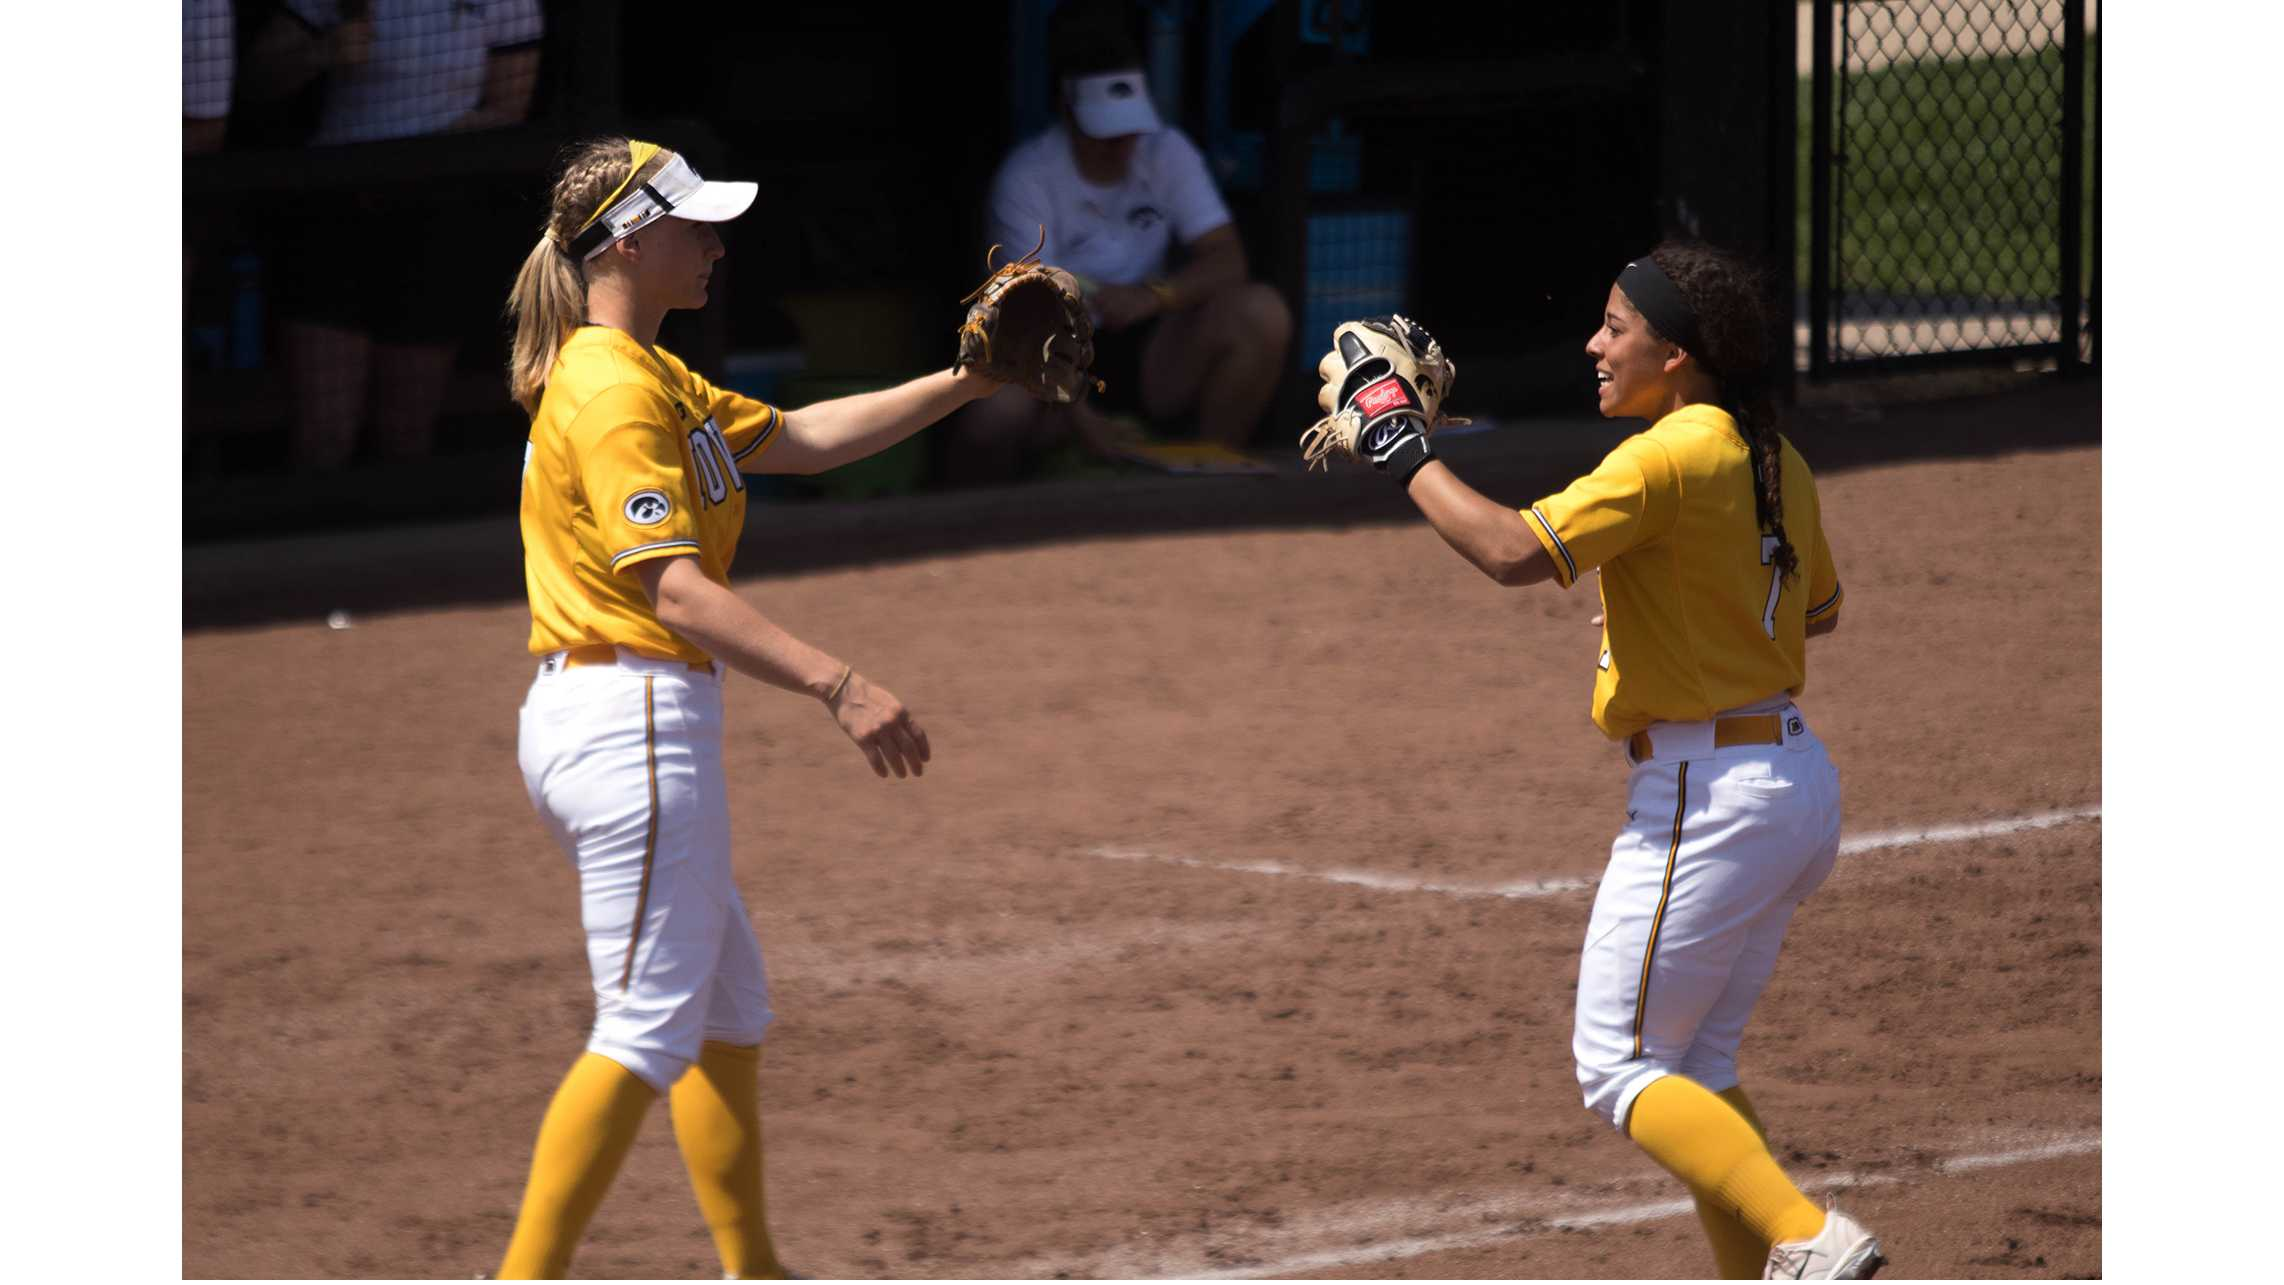 Lea Thompson high fives teammate during Iowa's game against Purdue at Pearl Field on May 5, 2018. The Hawkeyes were defeated 9-0. (Megan Nagorzanski/The Daily Iowan)